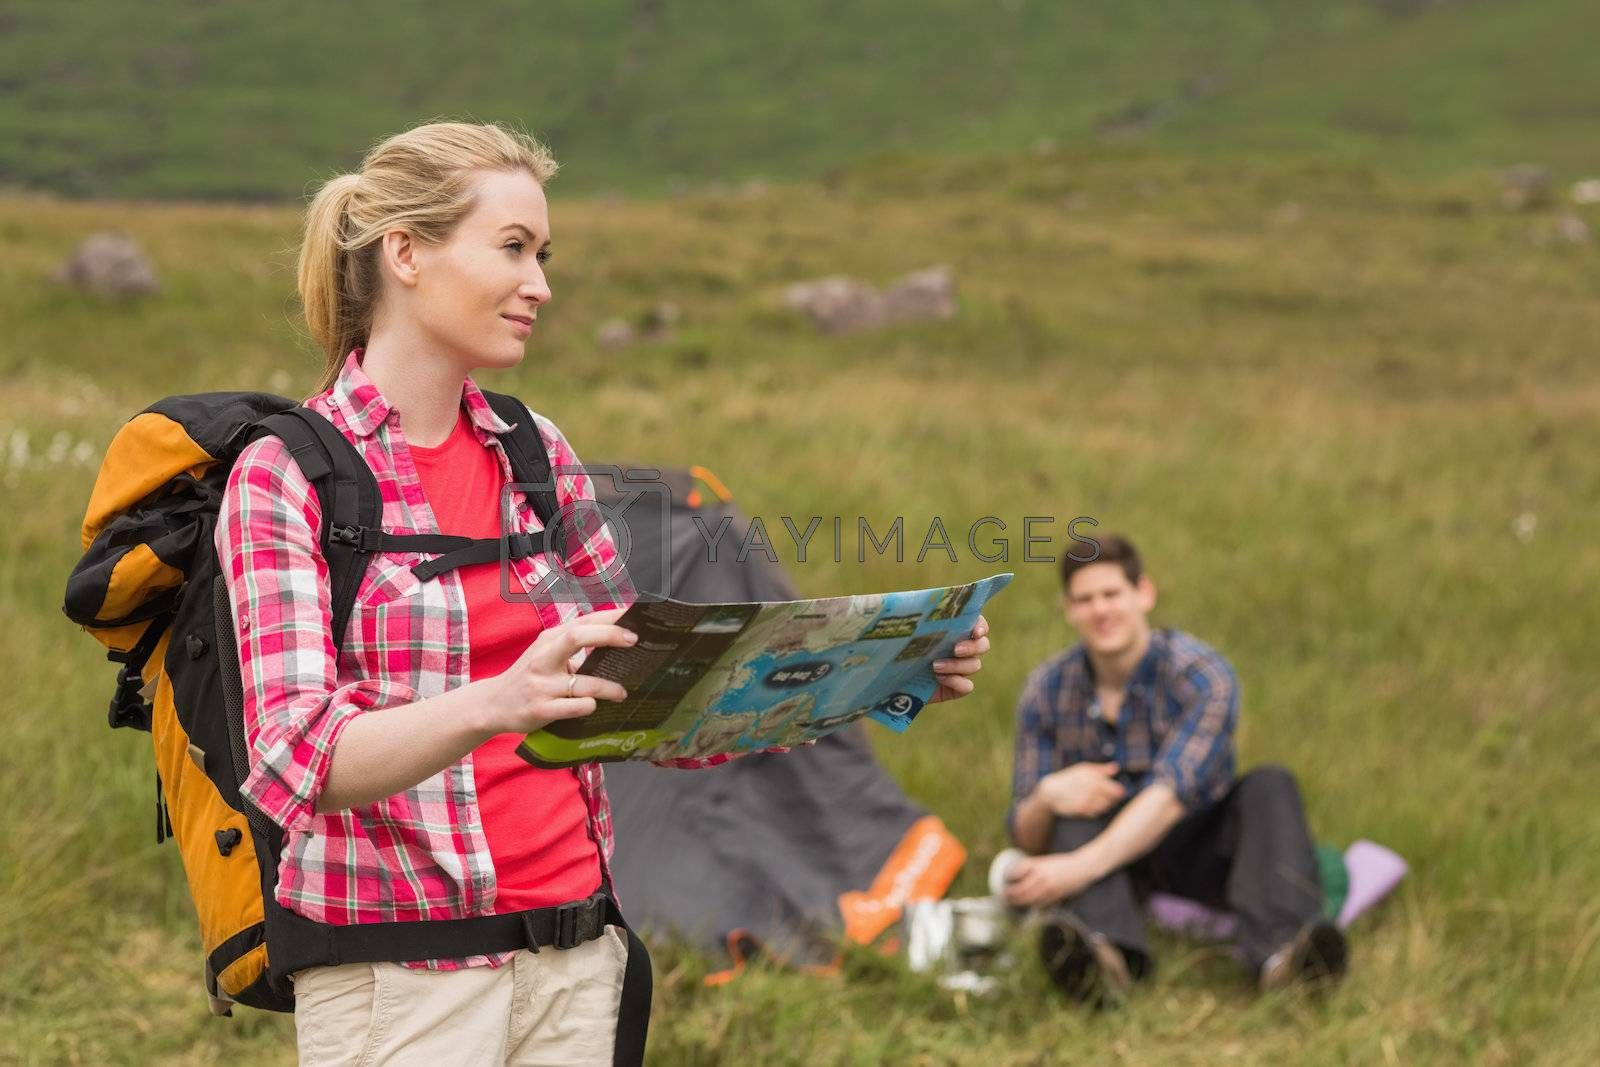 Smiling woman carrying backpack and holding map by Wavebreakmedia